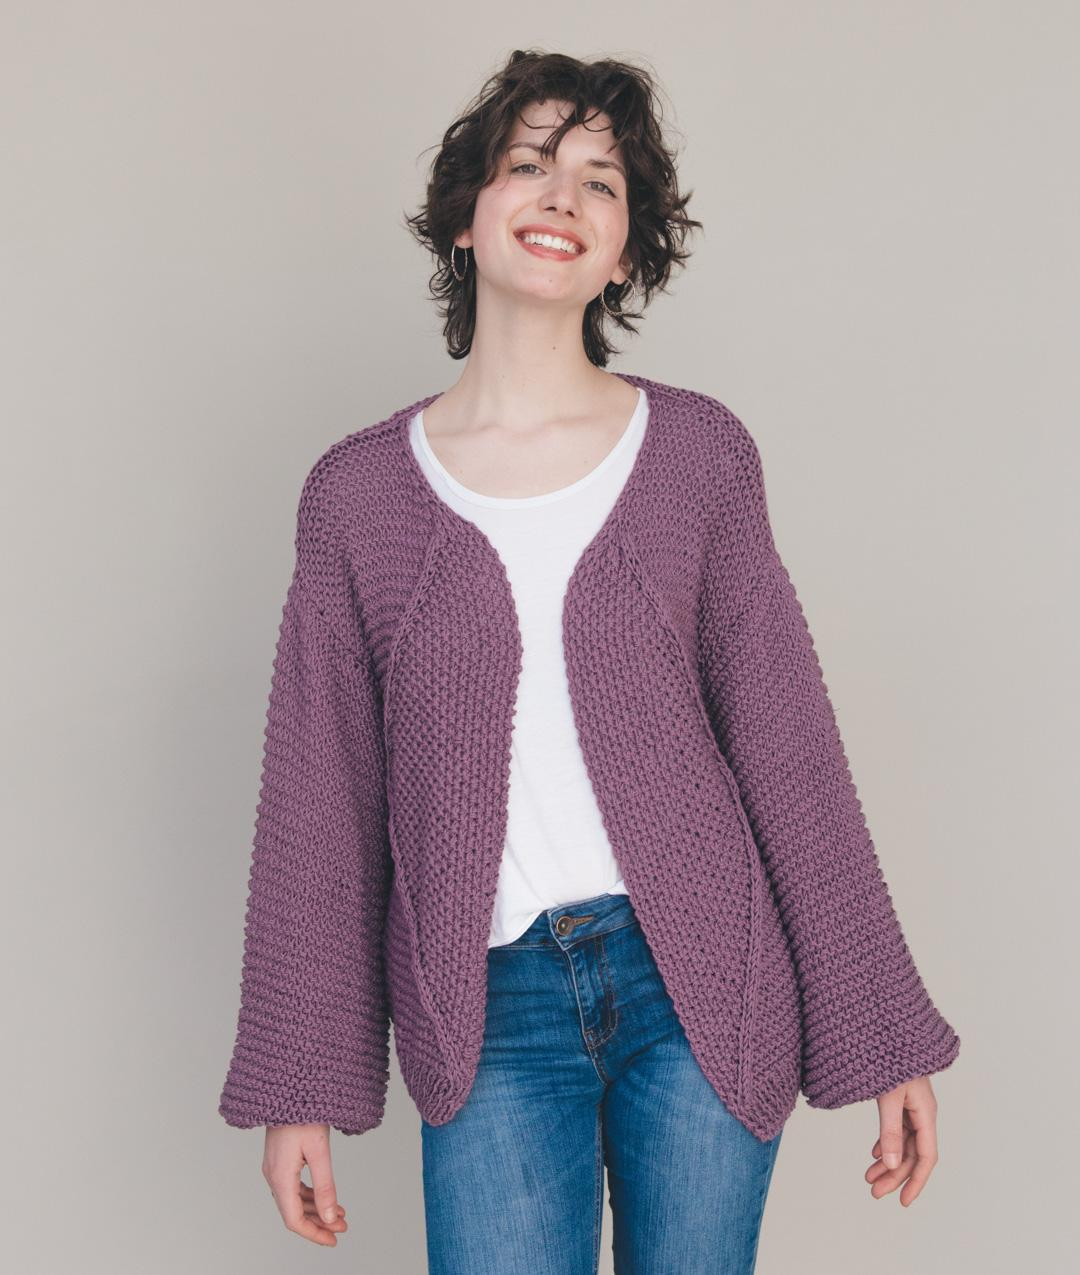 Summer 2018 Collection - Summer 2018 Collection -  - Lavender Cardi - 1